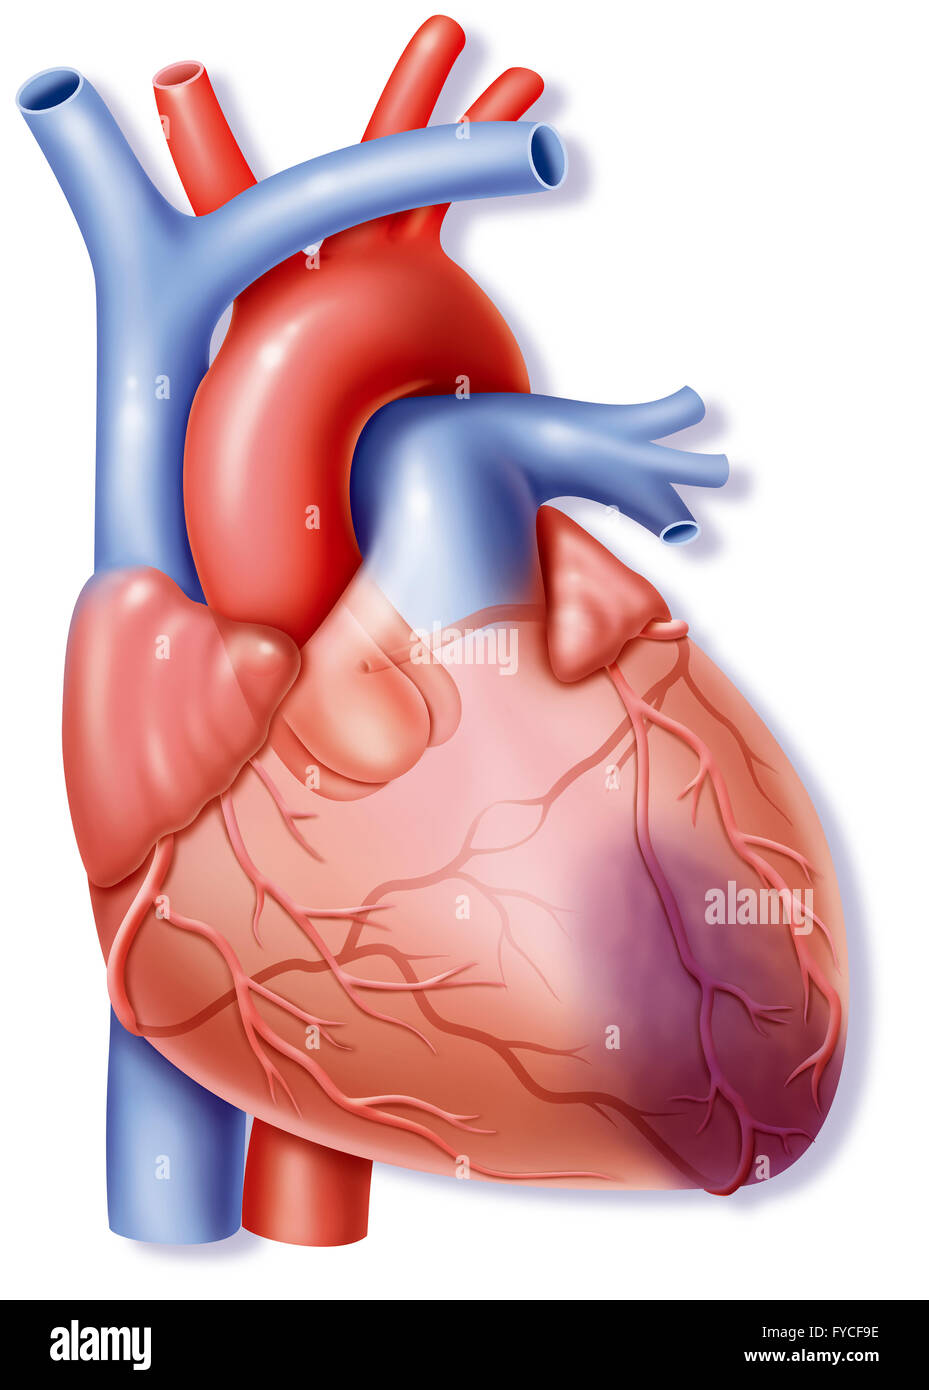 Heart Attack Drawing Stock Photo 102923002 Alamy